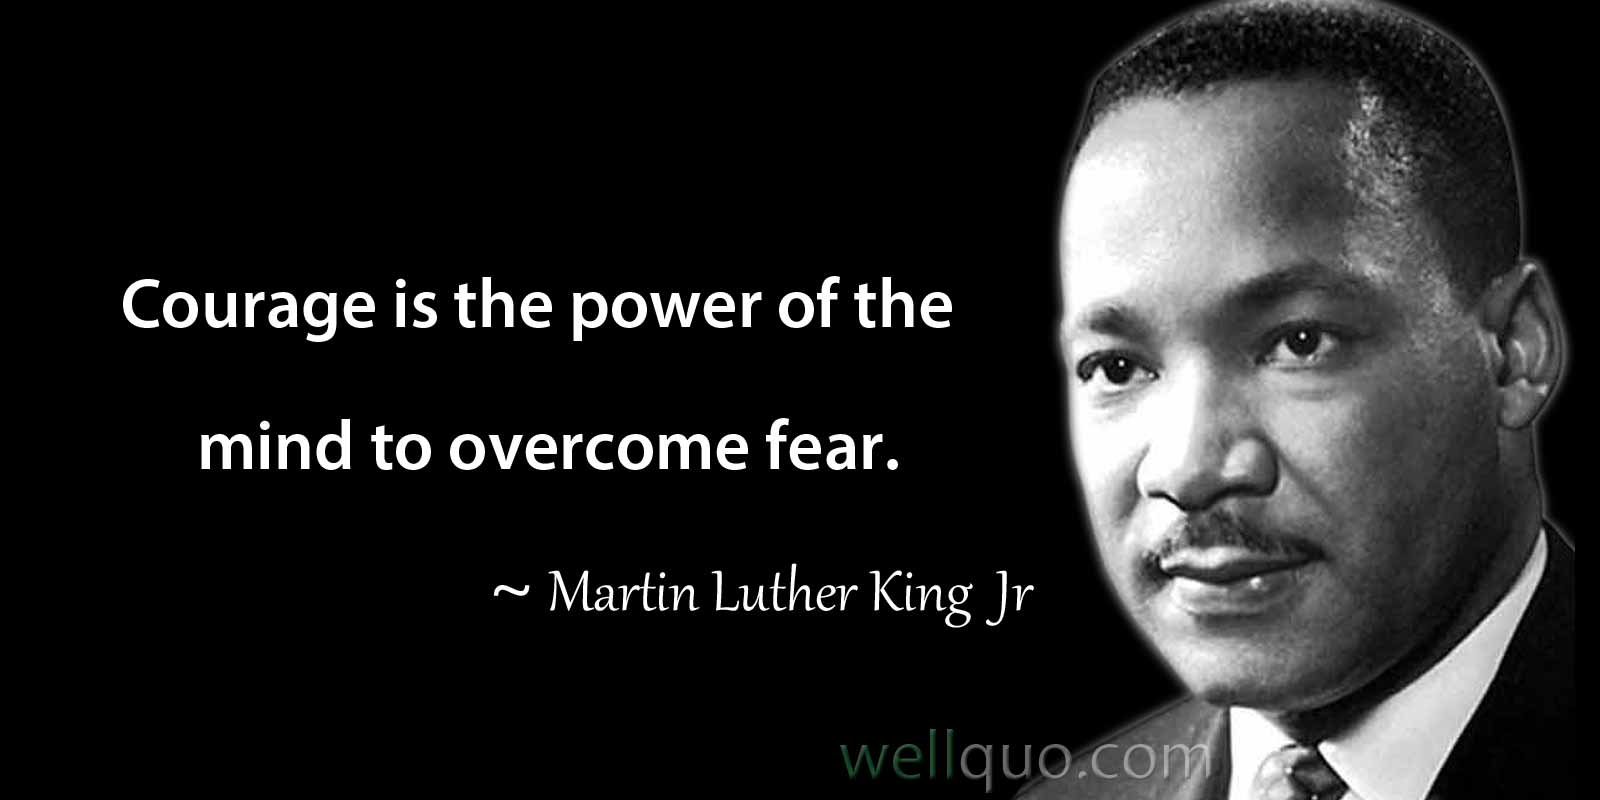 Martin Luther King Jr Quotes Well Quo